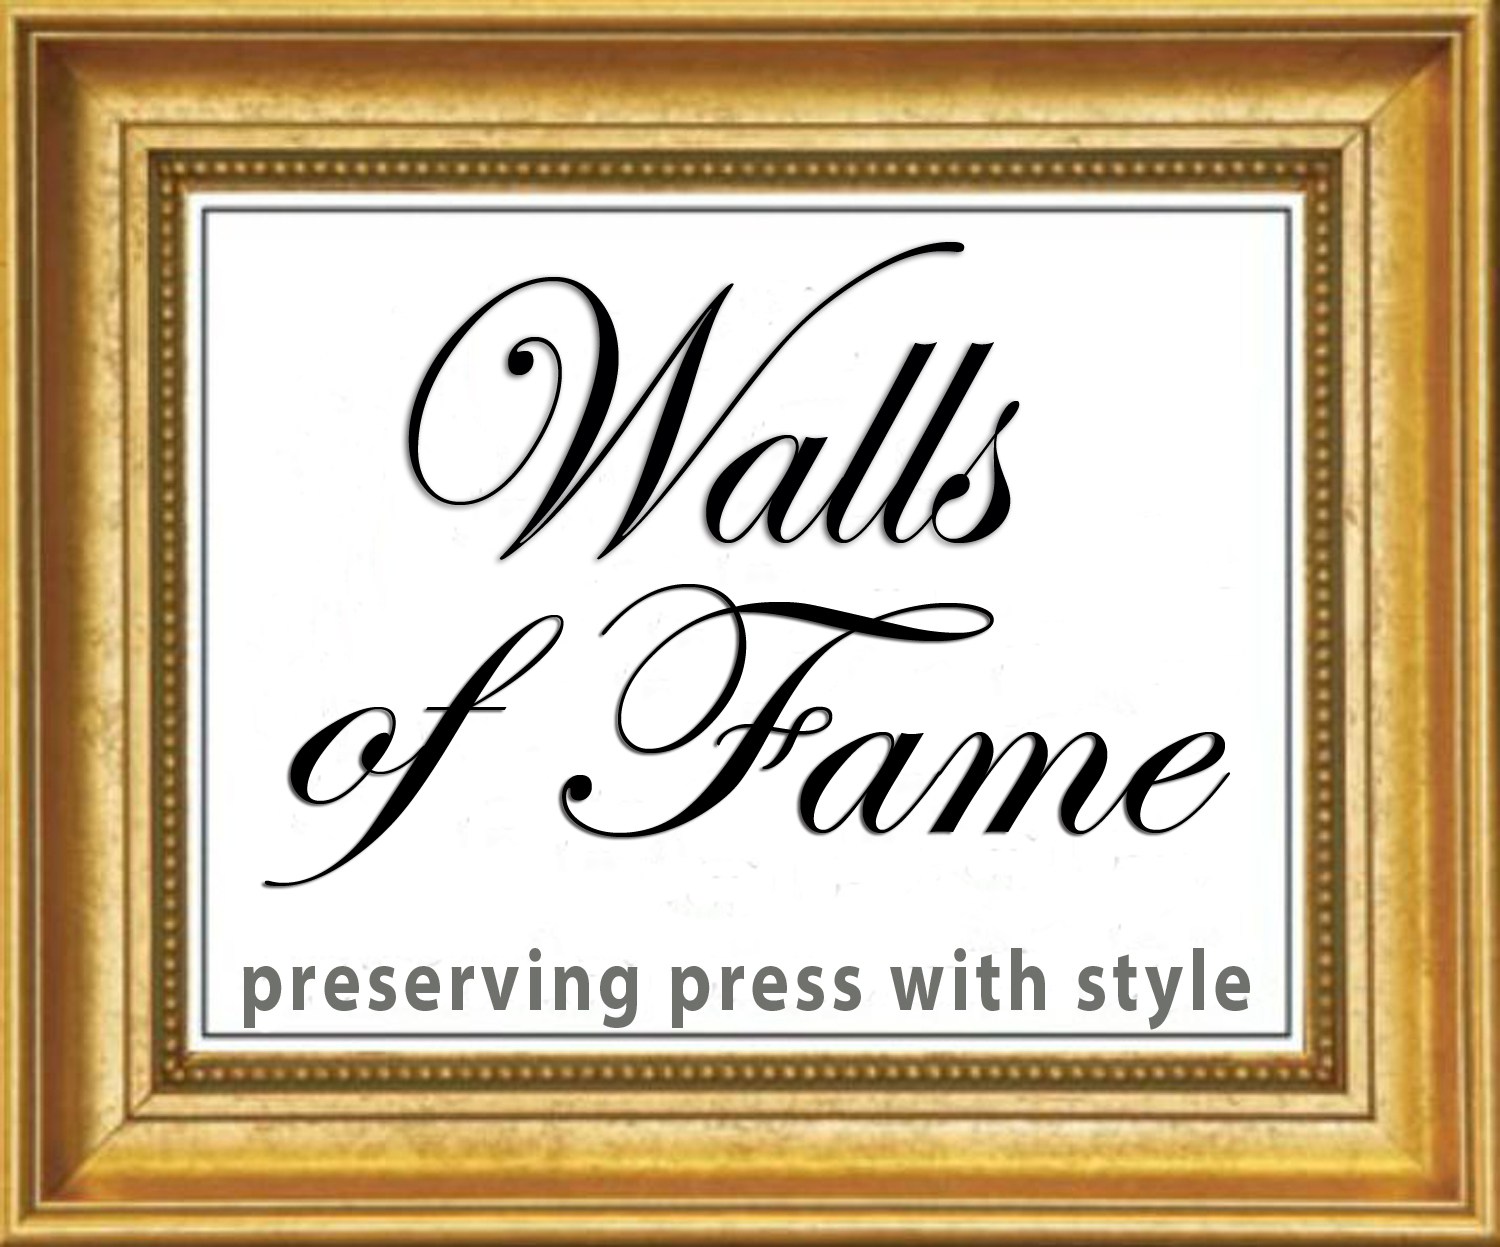 Walls of Fame: Custom Plaque Awards